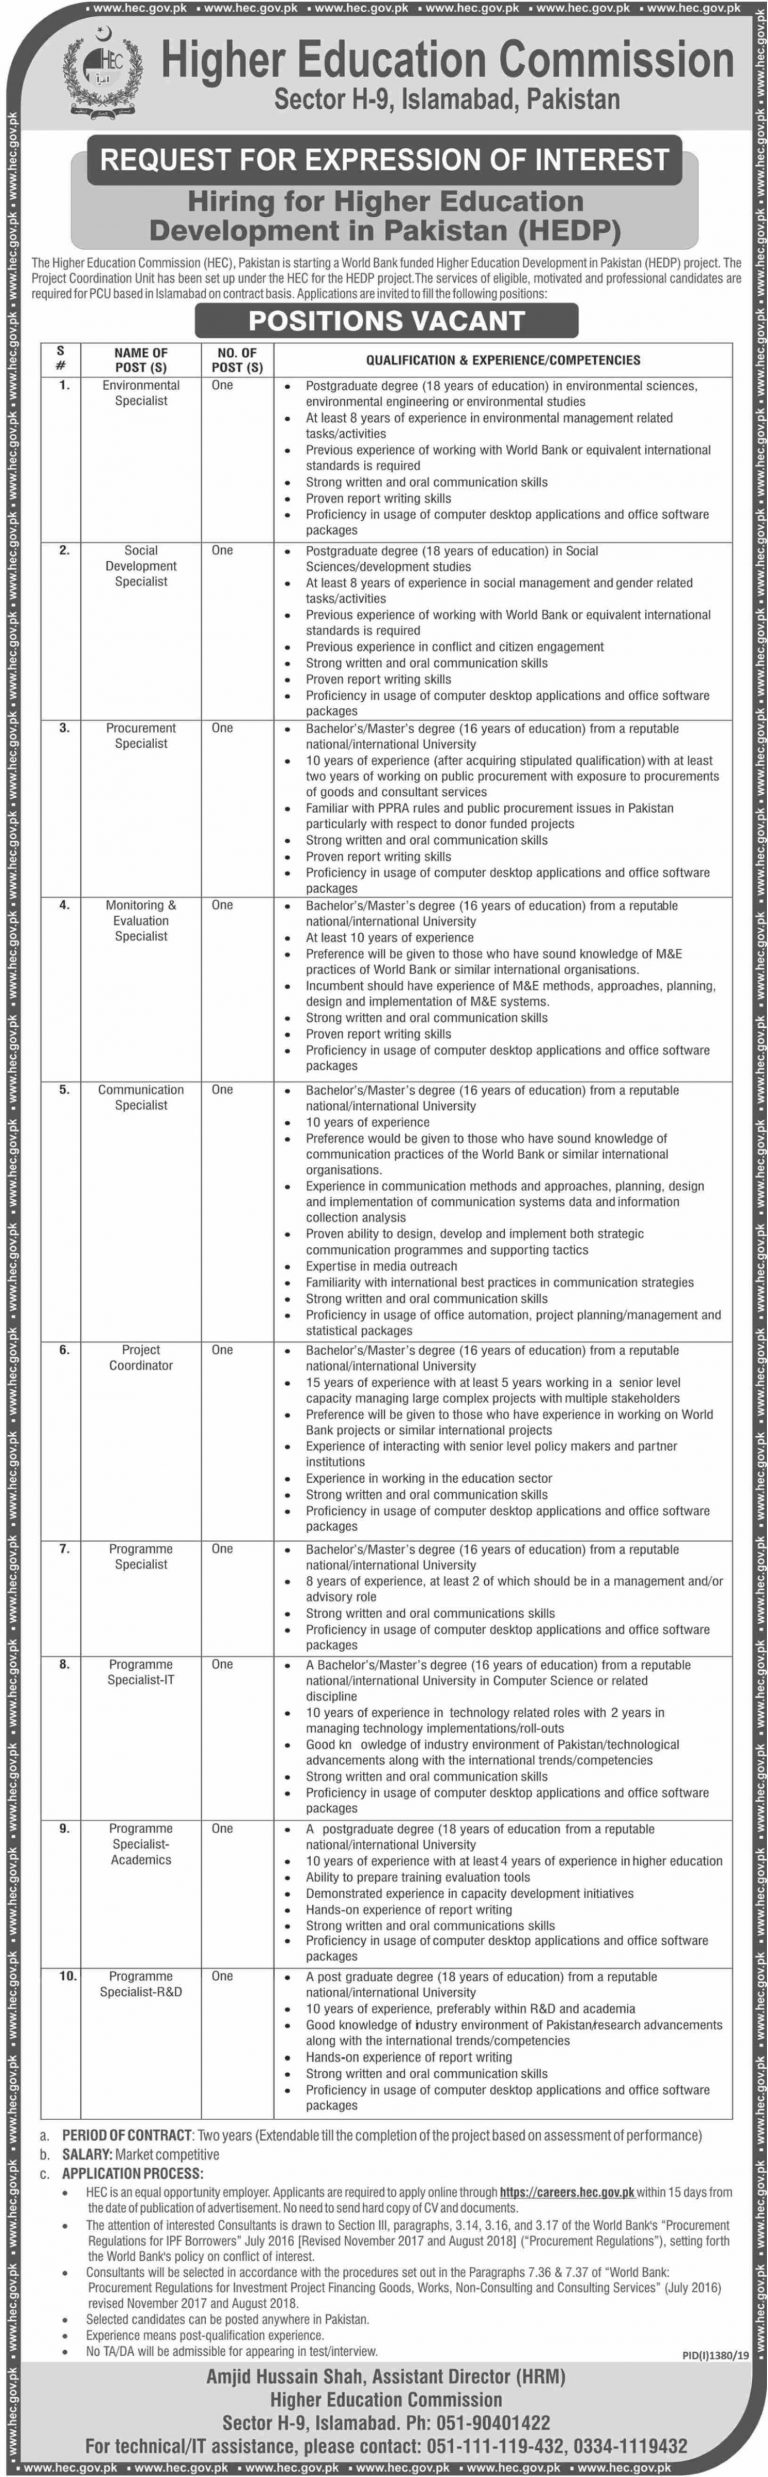 HEC Jobs 2019 Online Apply | Higher Education Commission Islamabad